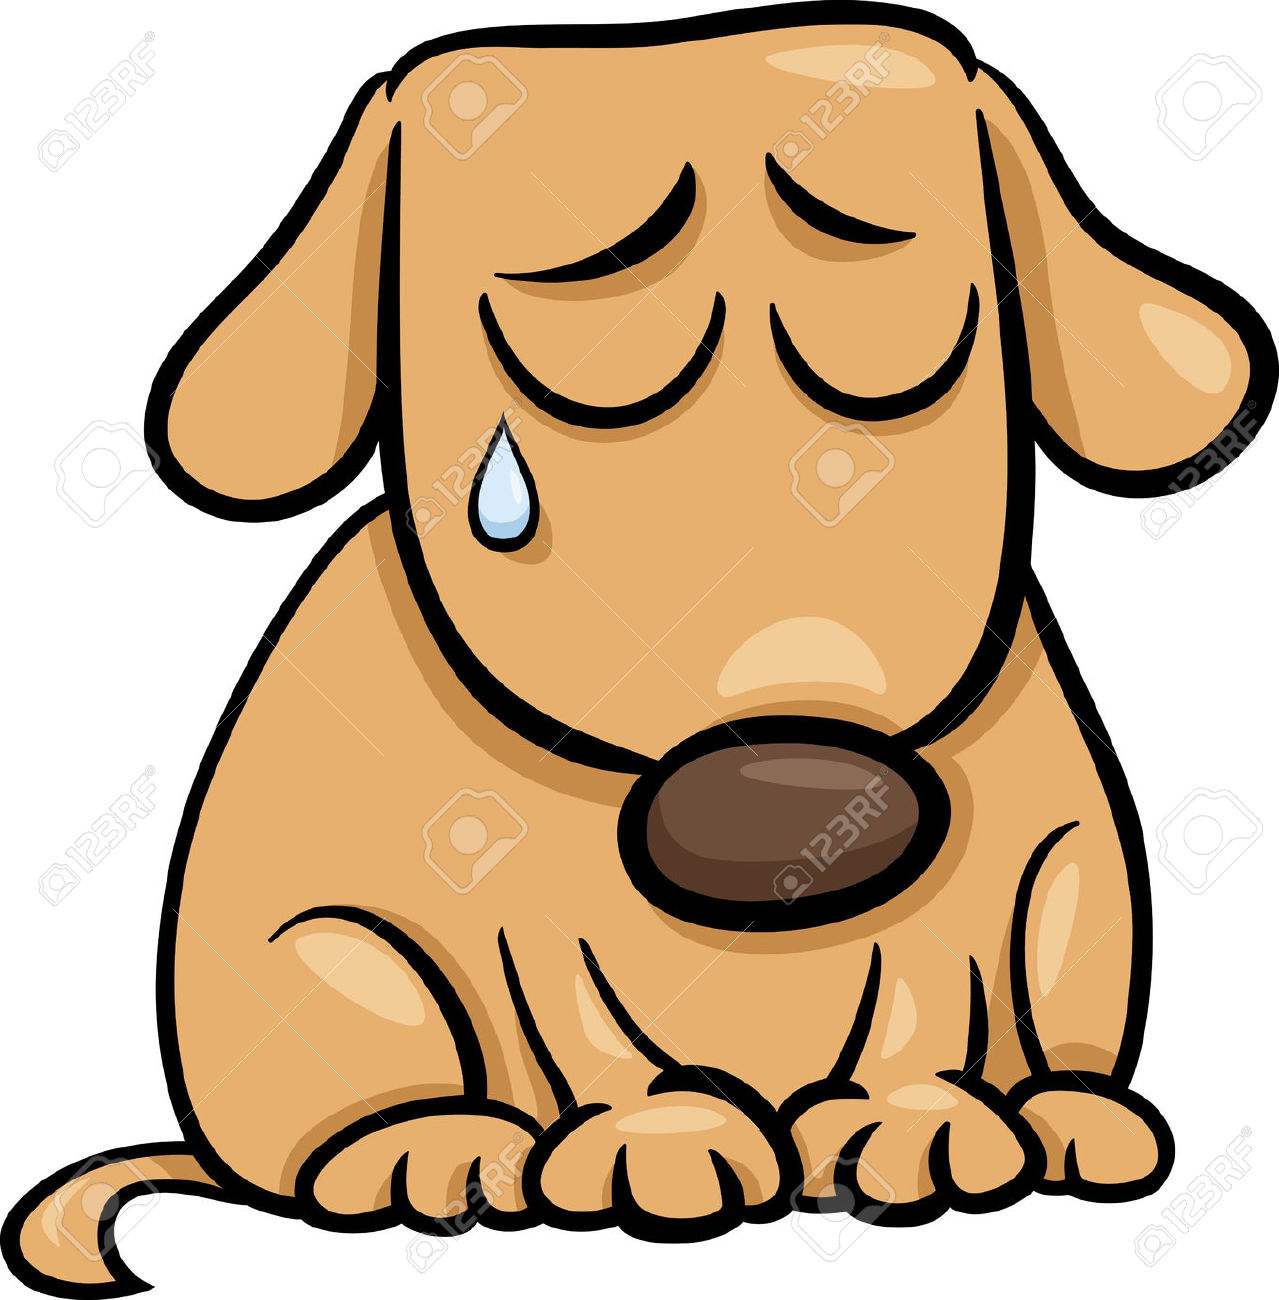 Cartoon Illustration Of Cute Sad Dog Or Puppy Royalty Free.